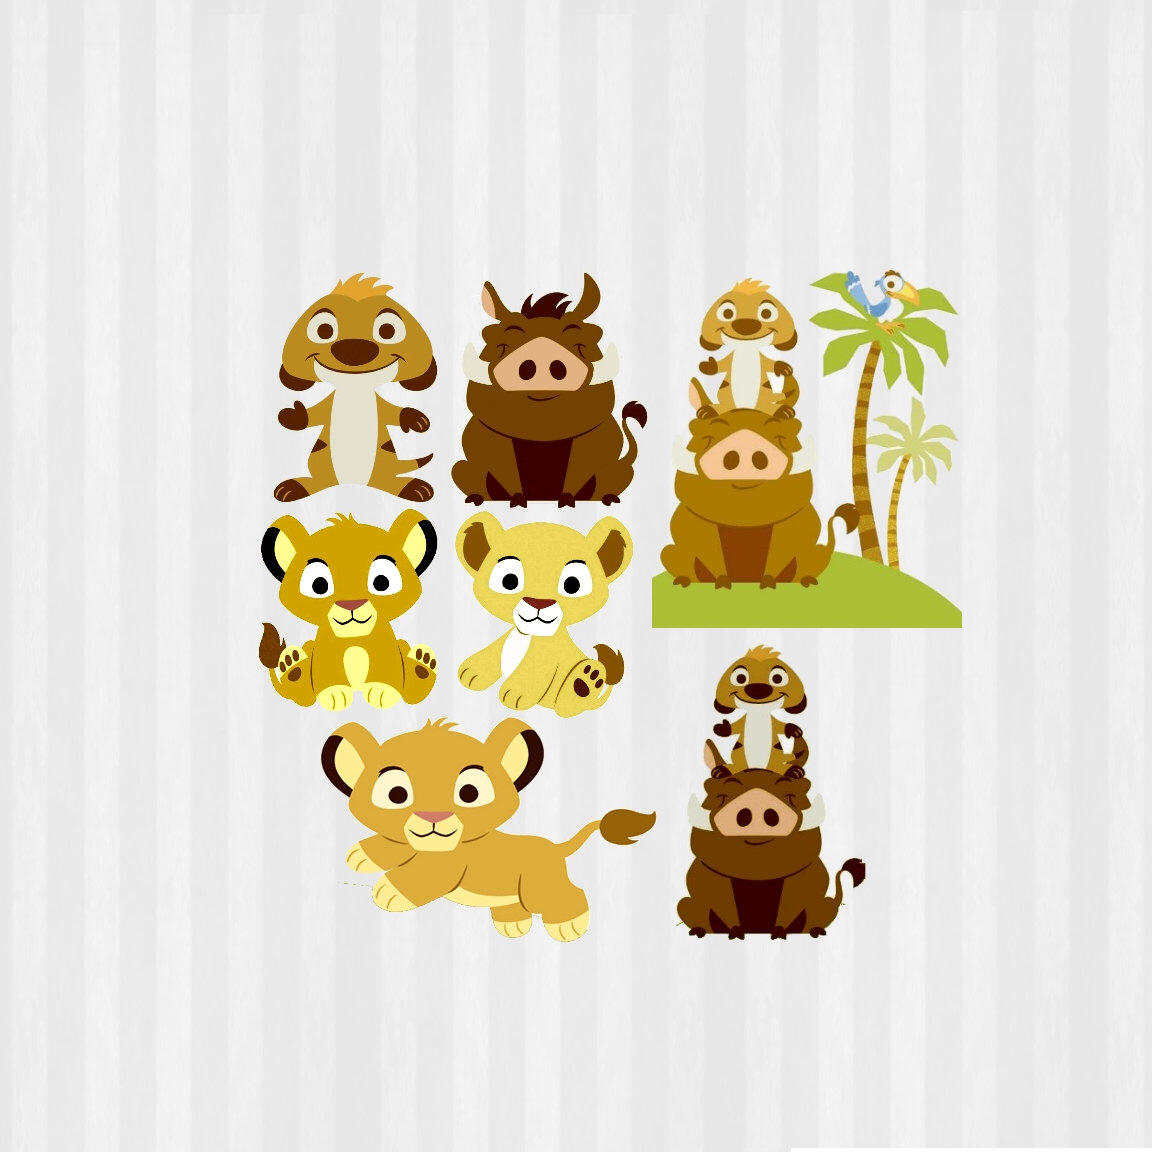 Bebé León rey Clip art, SVG Baby Lion King, Rey León baby shower.